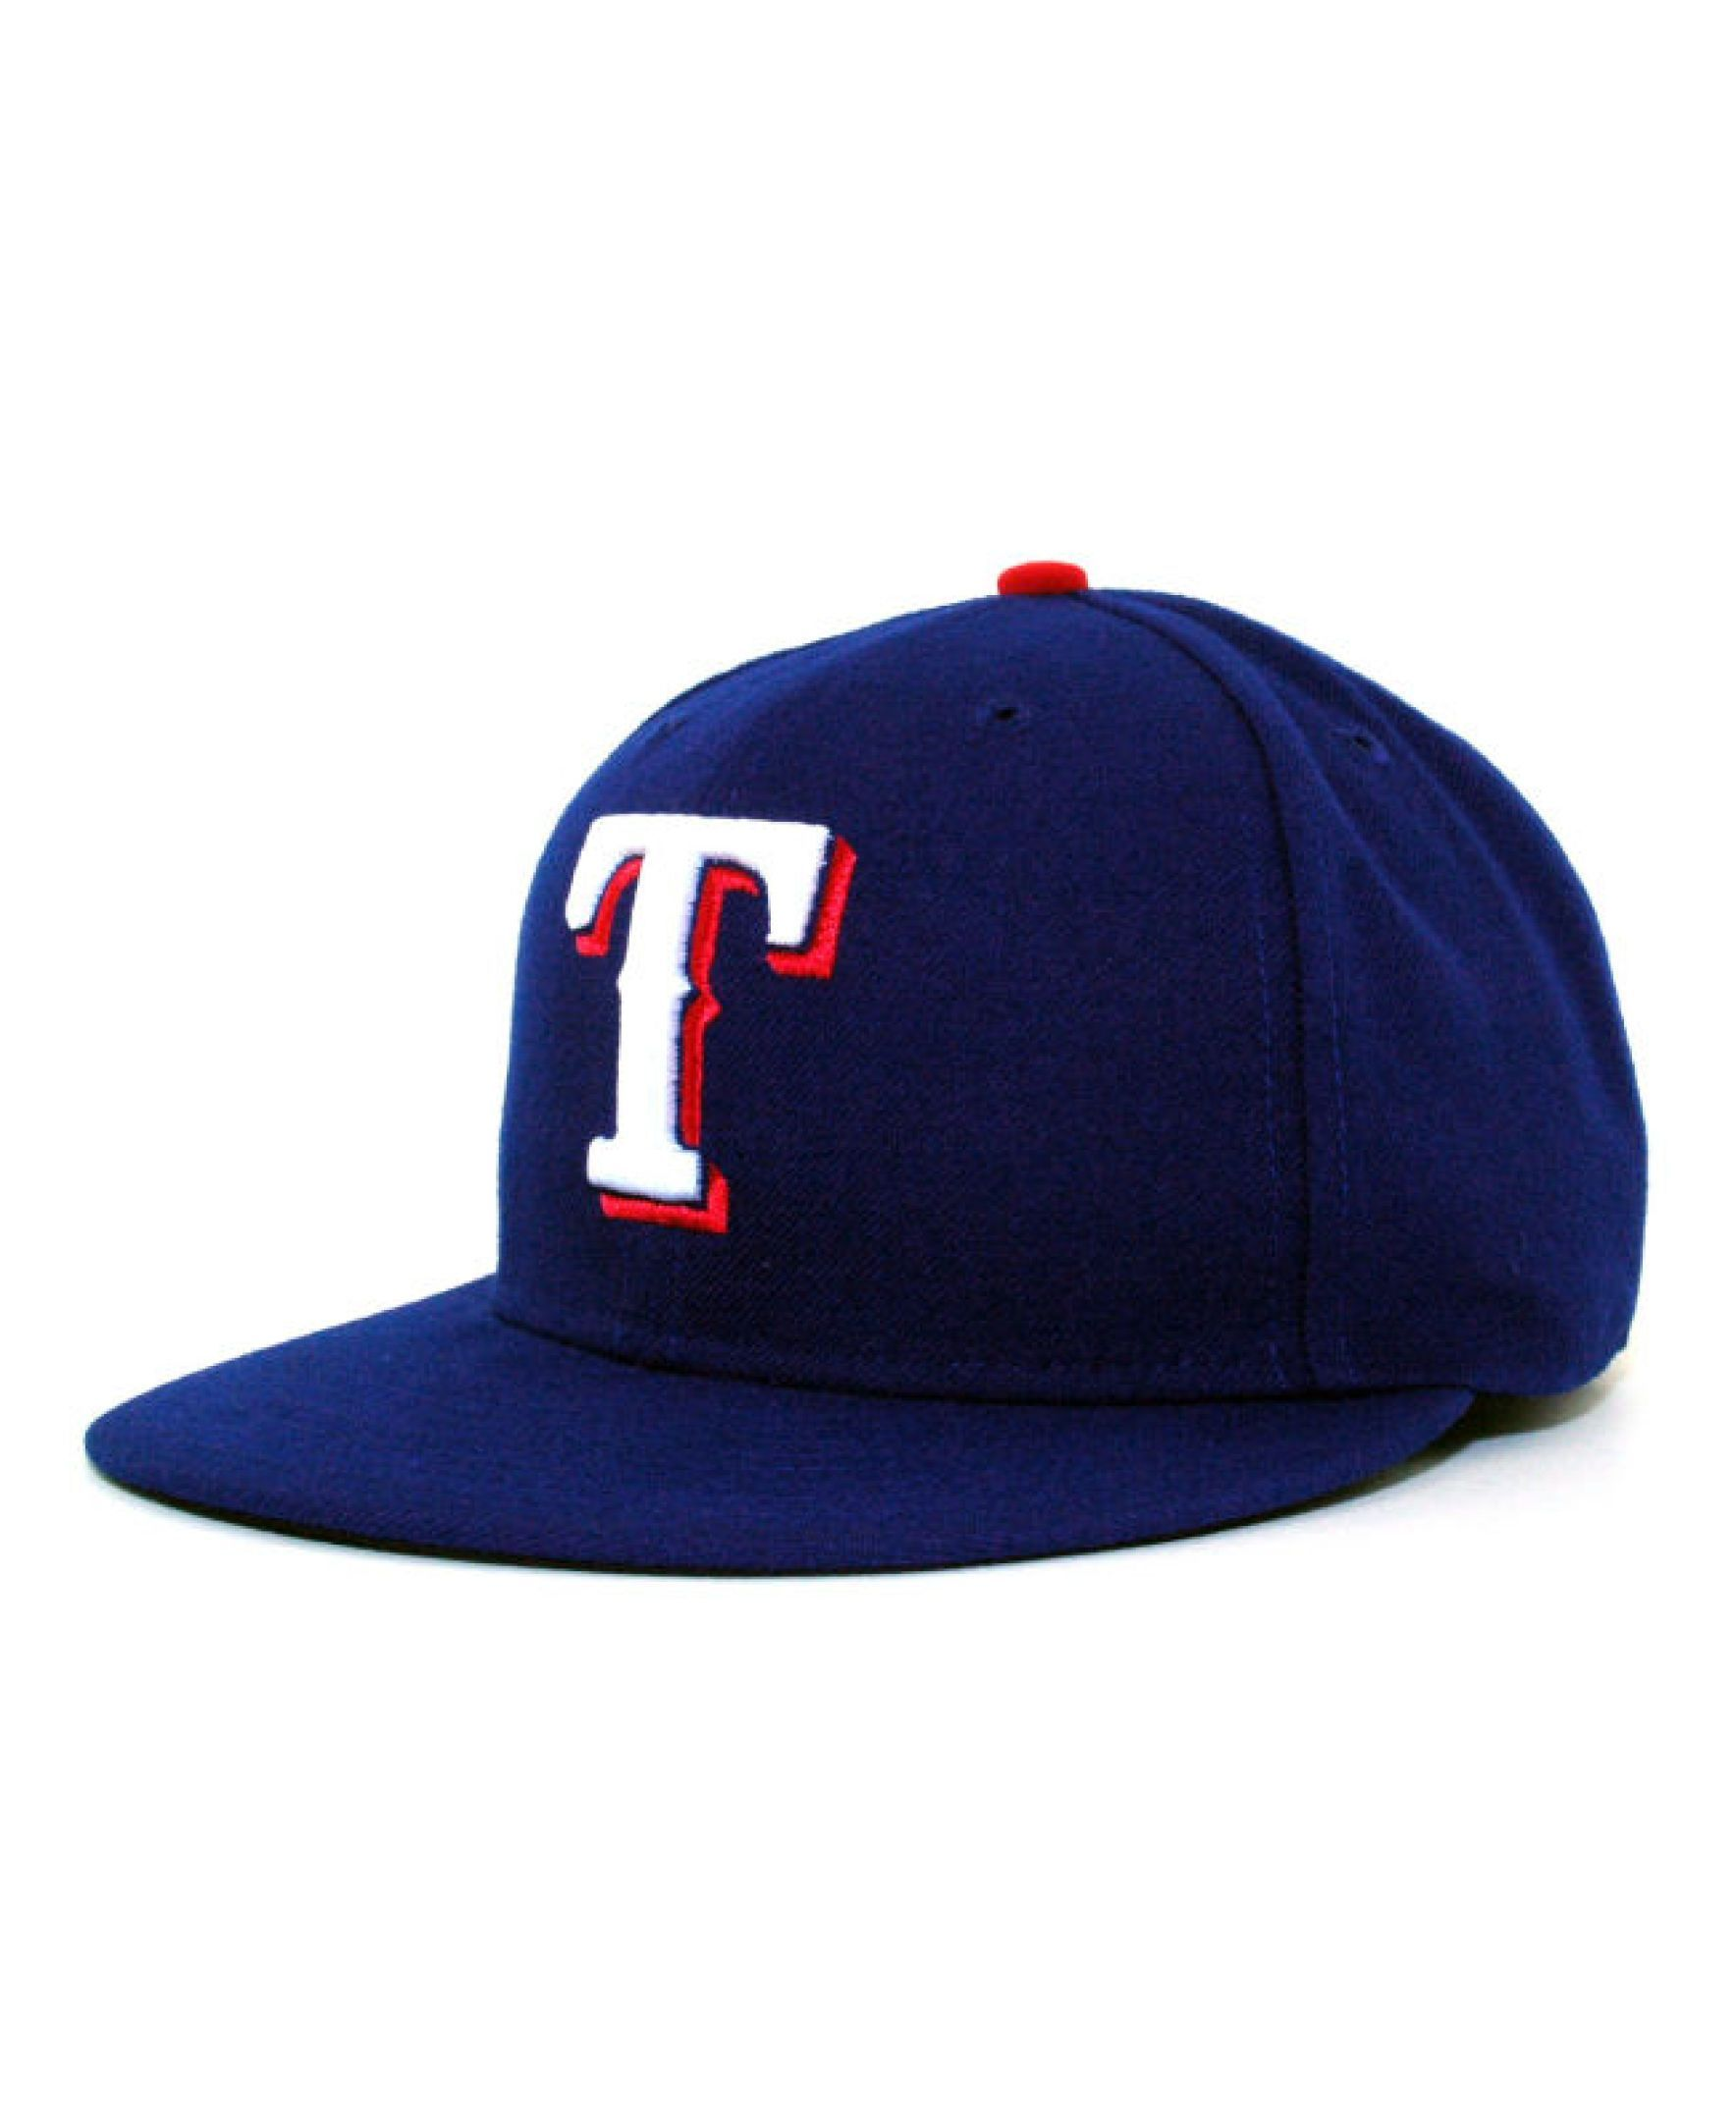 647648a6 New Era Texas Rangers Mlb Authentic Collection 59FIFTY Cap ...